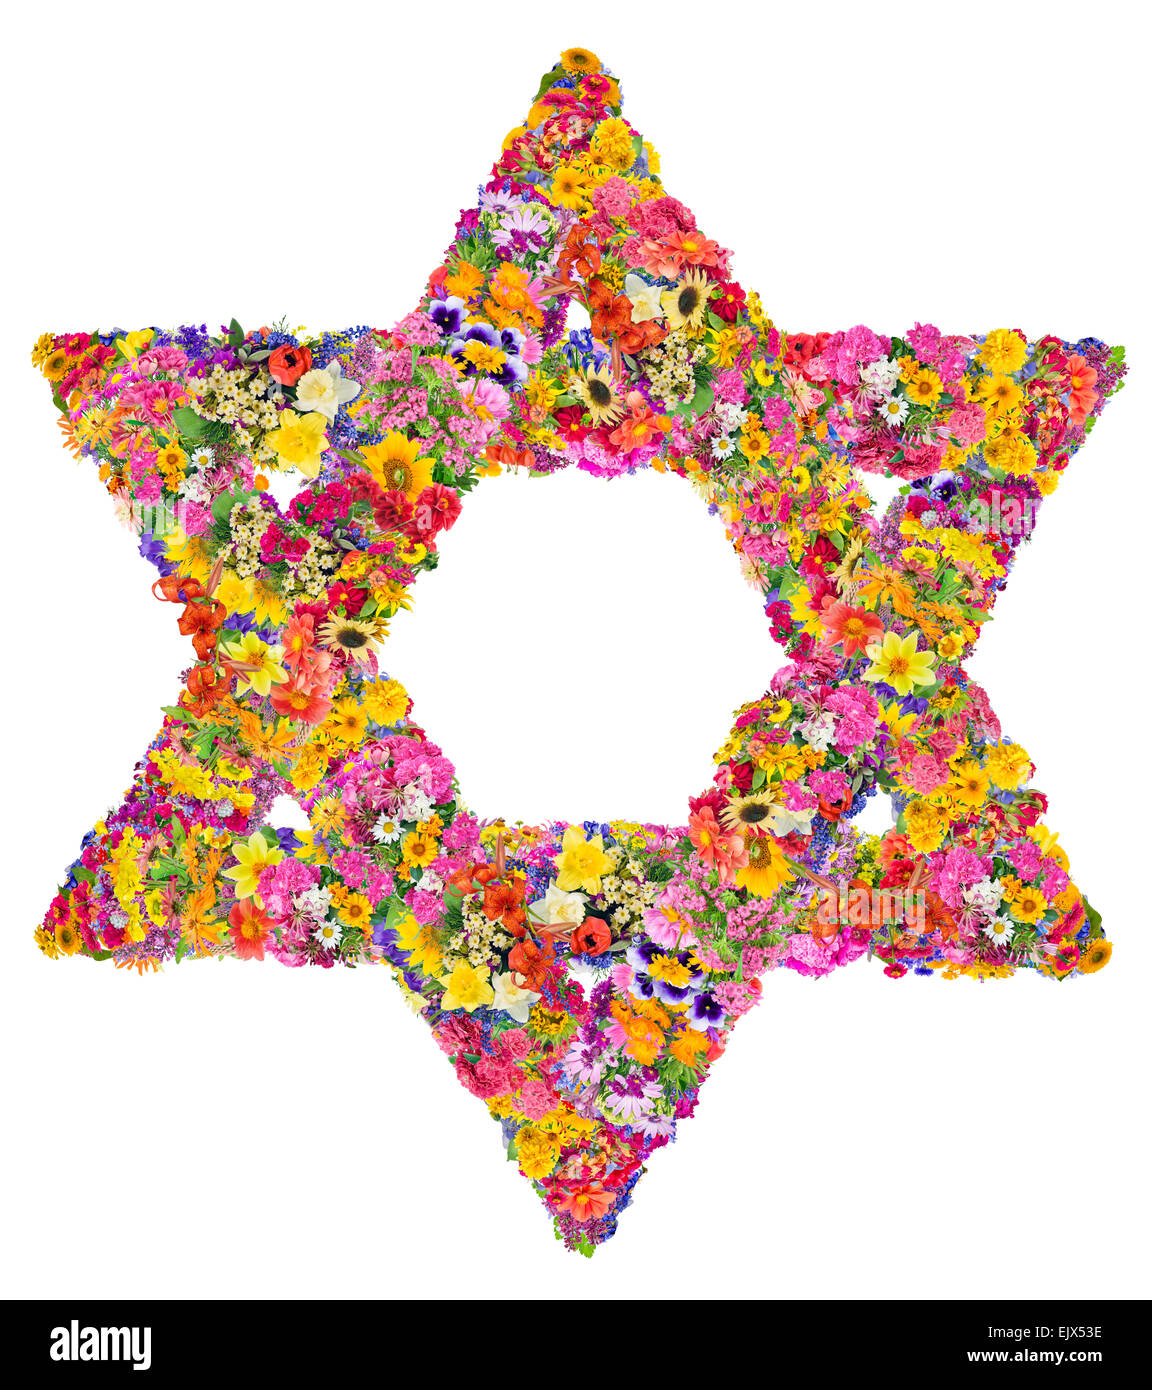 The symbol of Judaism - David star. Sign is made from bright  summer flowers. Isolated abstract handmade collahe - Stock Image